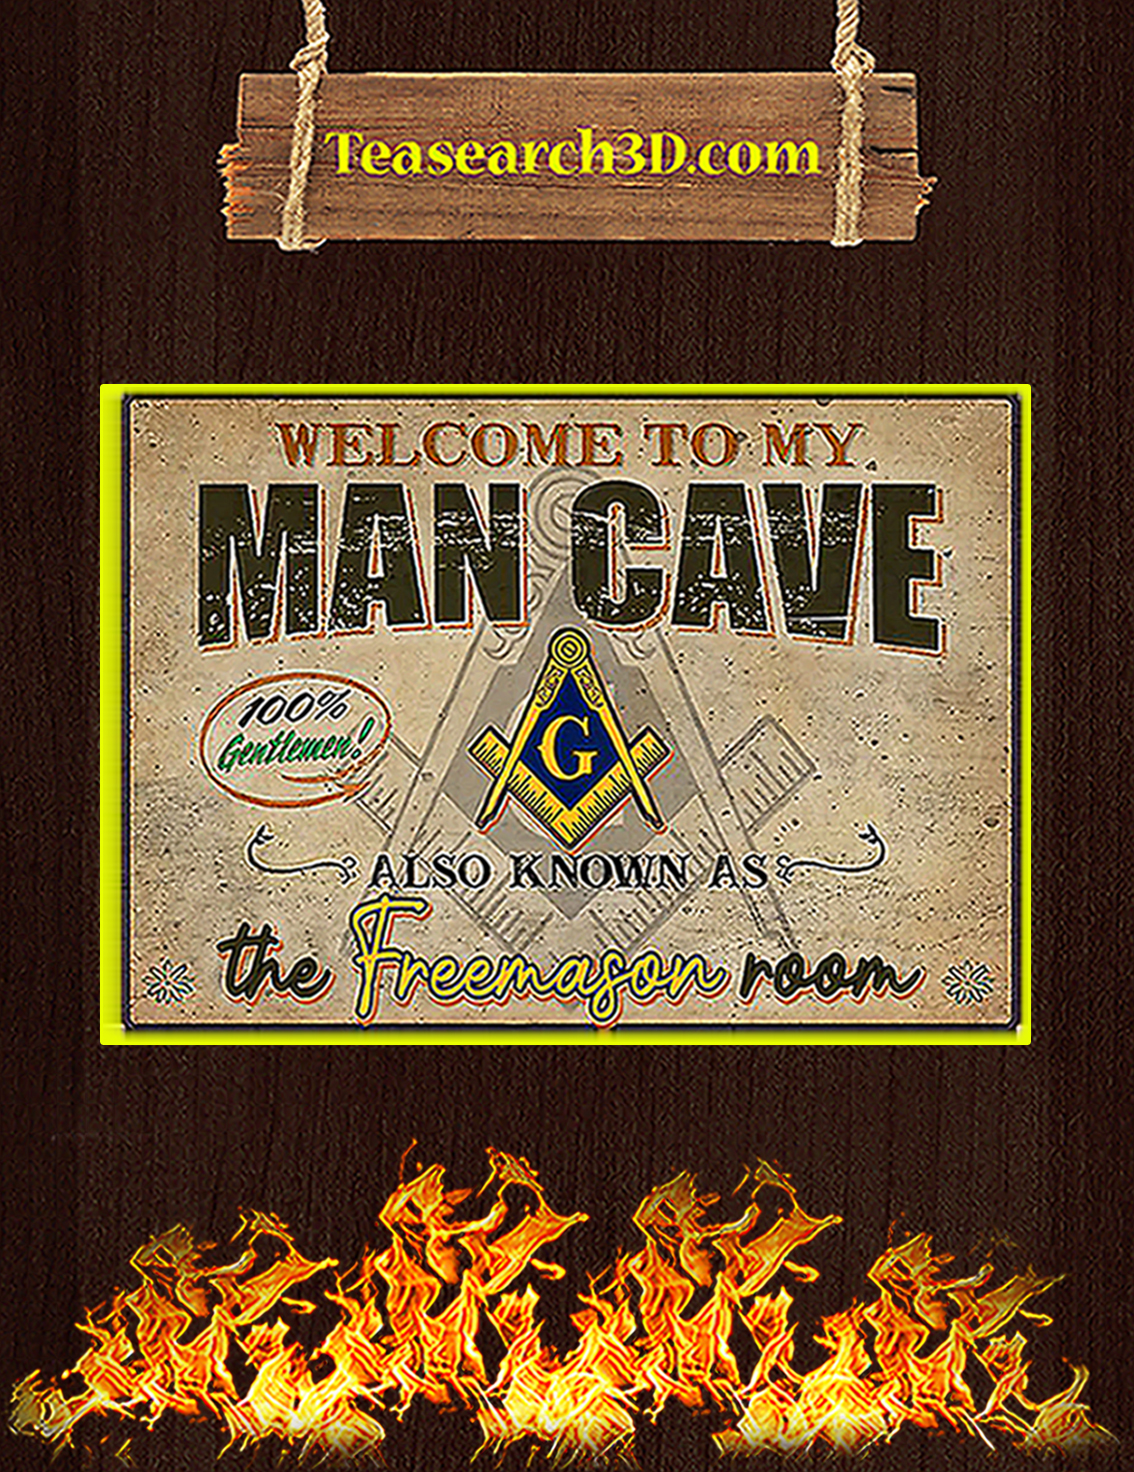 Welcome to my man cave also known as the freemason room poster A3